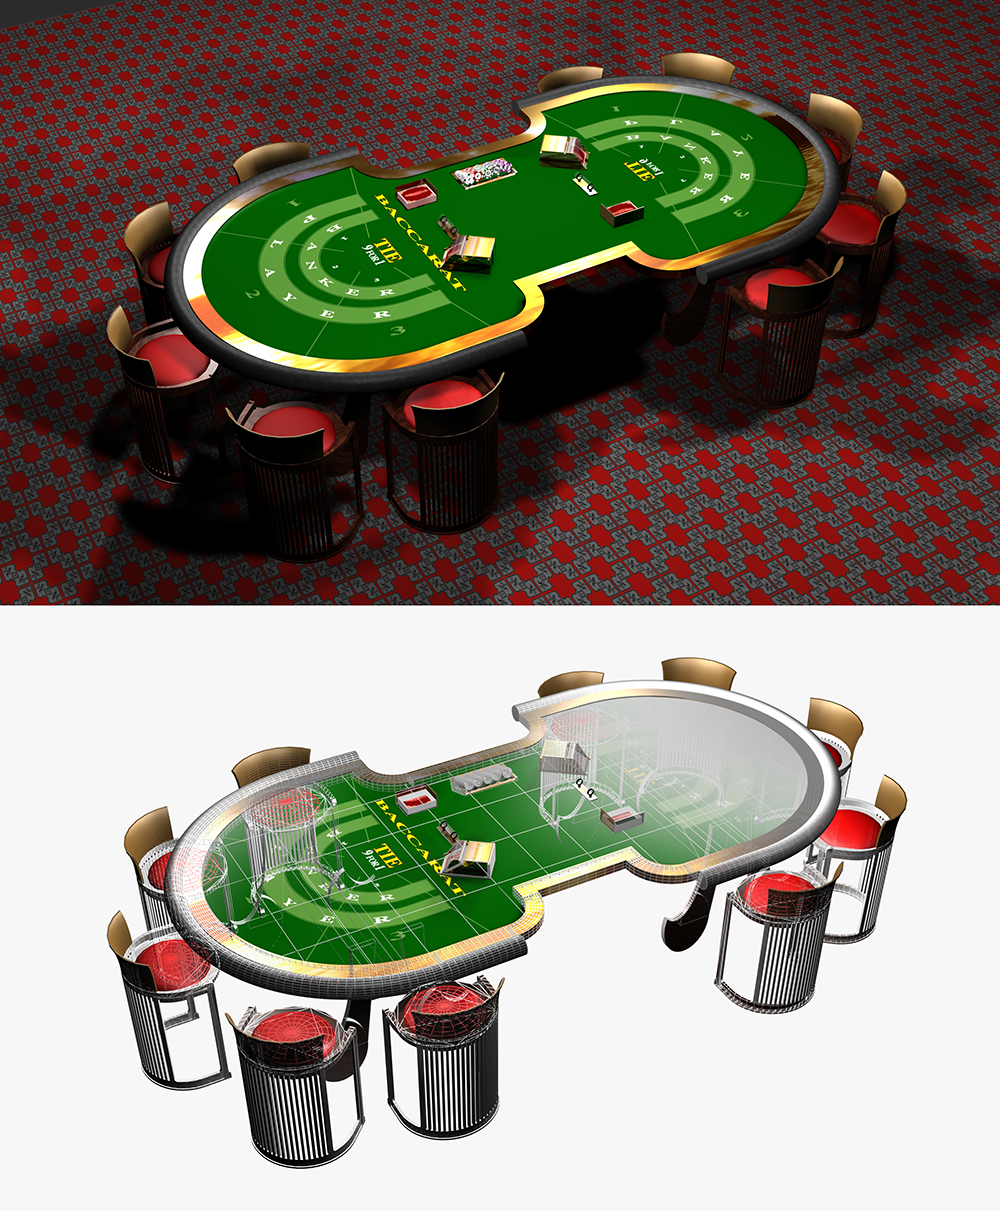 3D Casino Baccarat Table